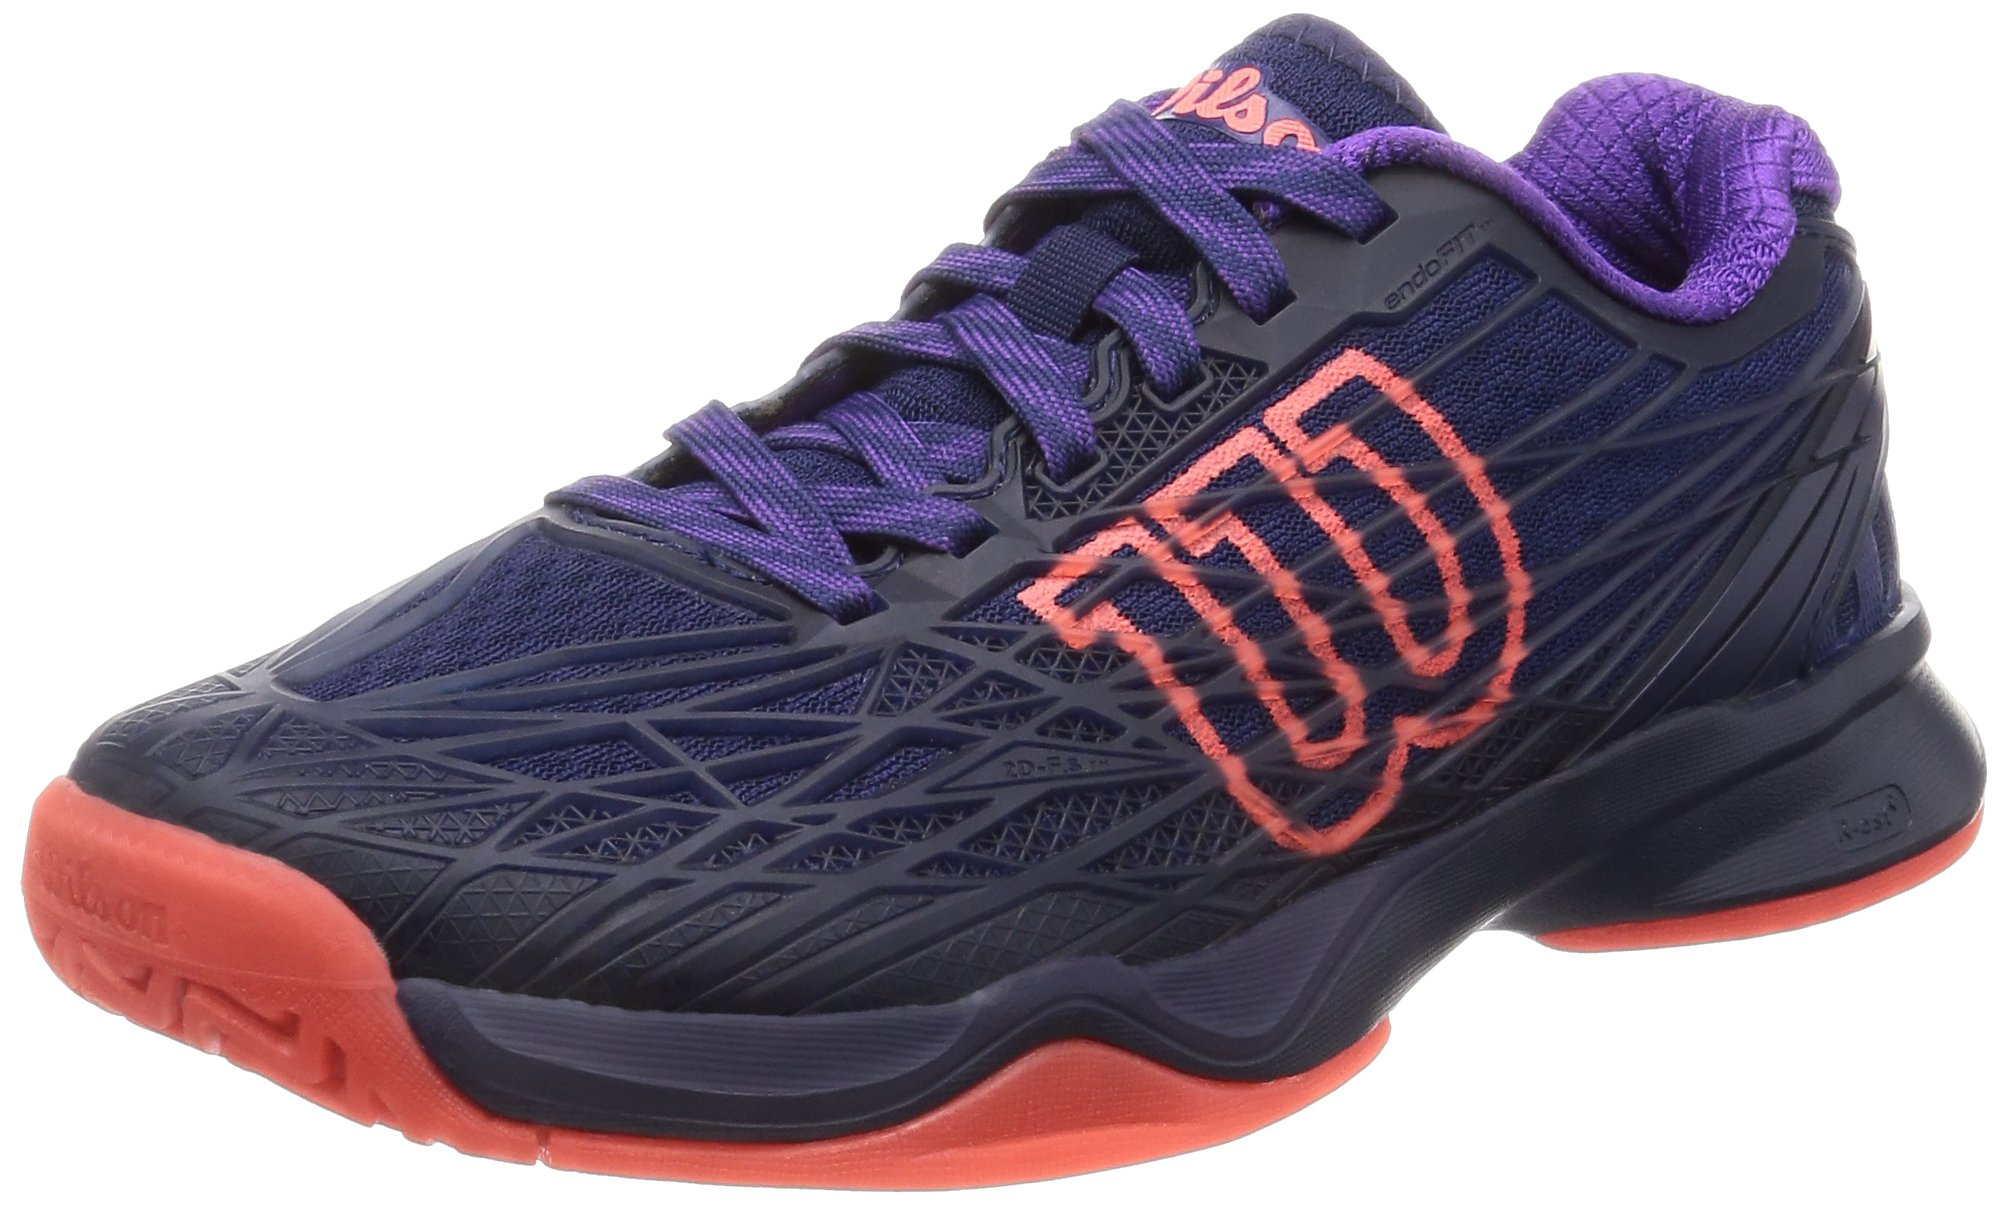 Wilson Koas Tennis Shoe Womens - Astral Aura/Evening Blue/Fiery Coal 8 B(M) US